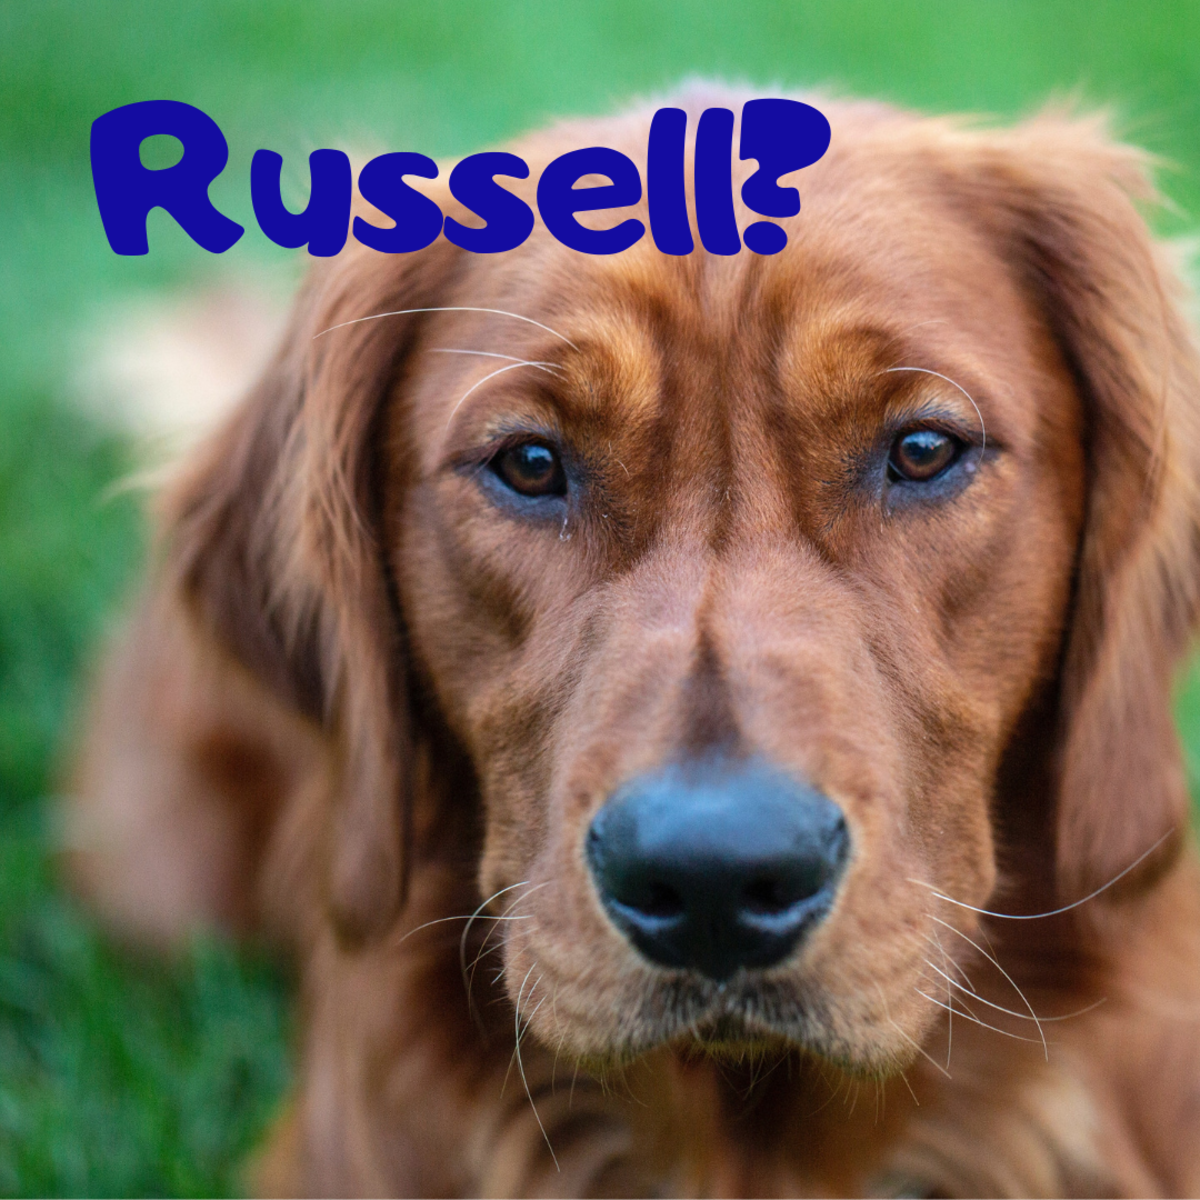 Is he a Russell?